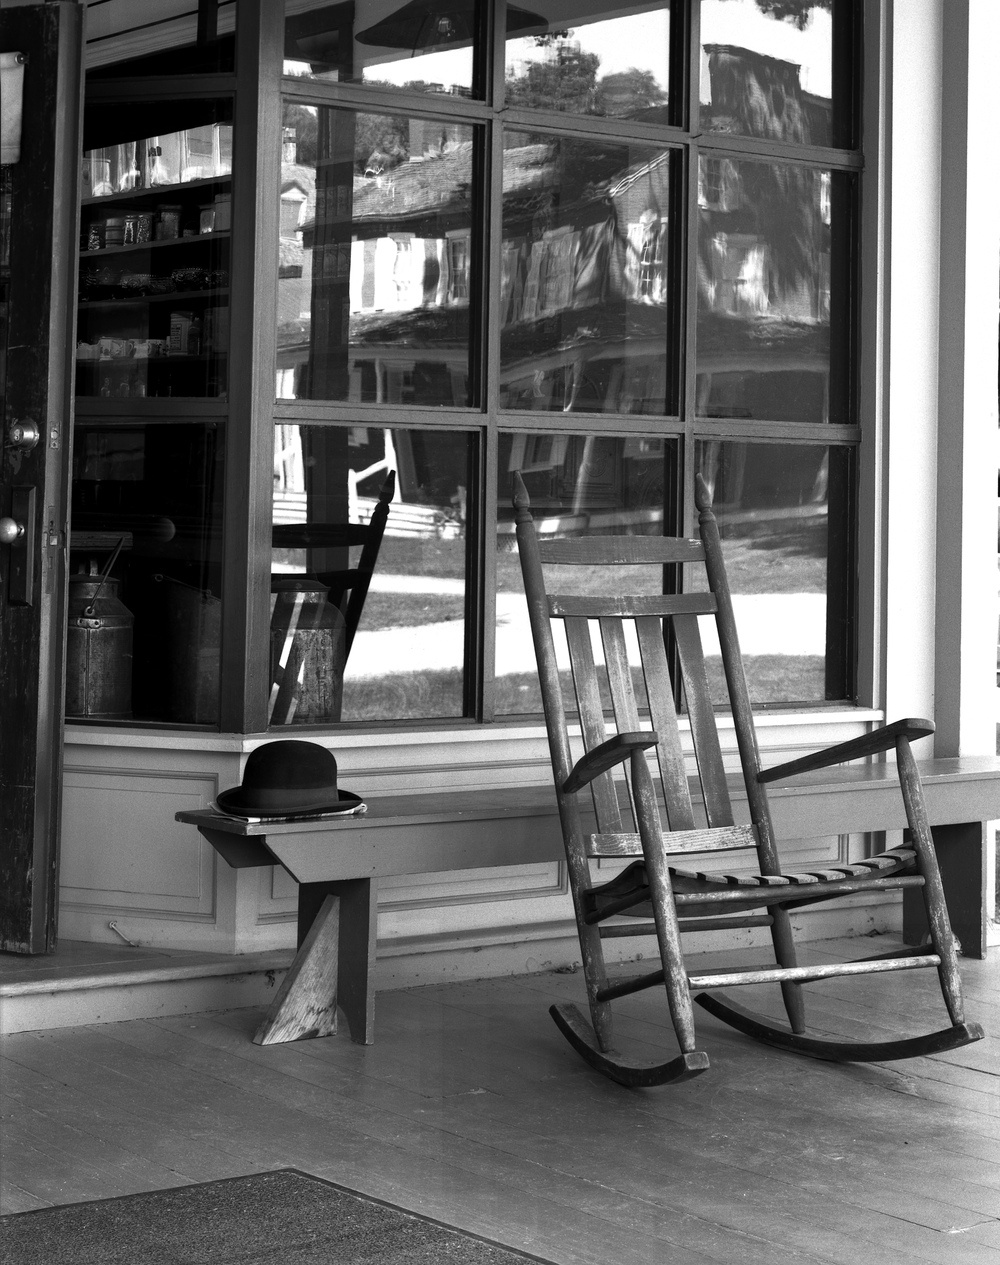 4x5_for_365_project_0251_LandisValley_corner_store_porch.png